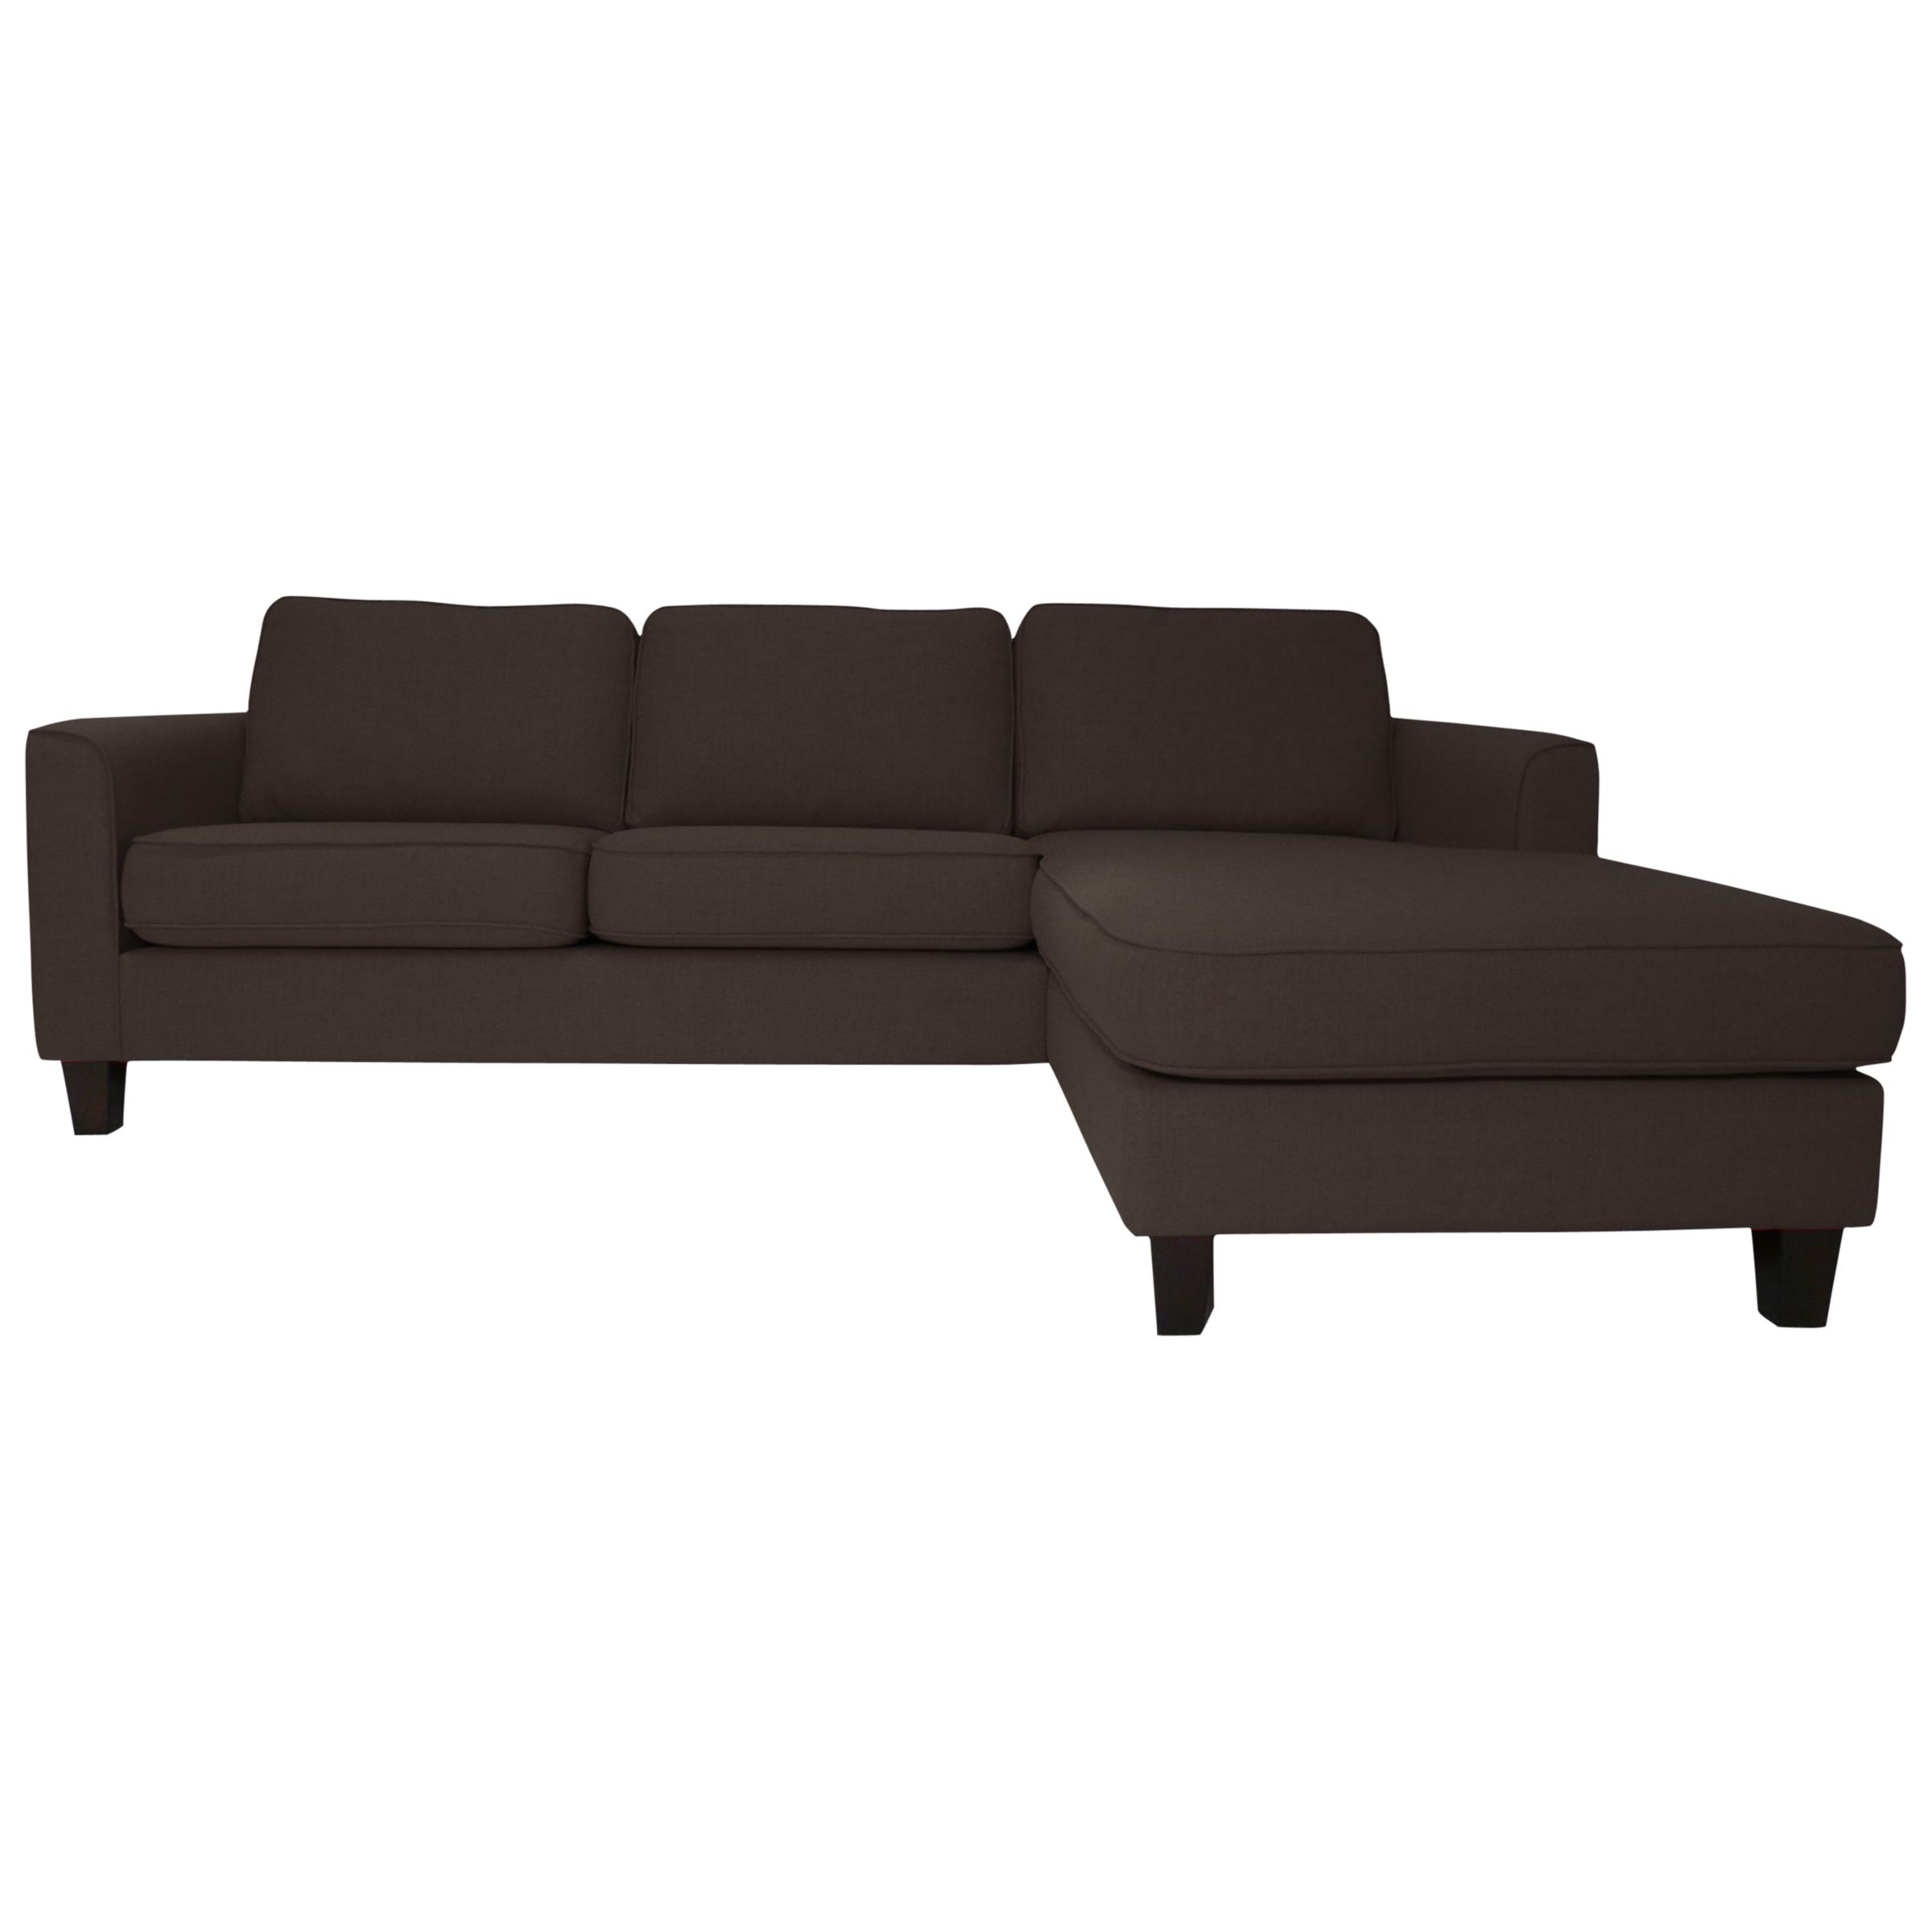 John lewis portia lhf chaise end sofa charcoal review for Chaise end sofas